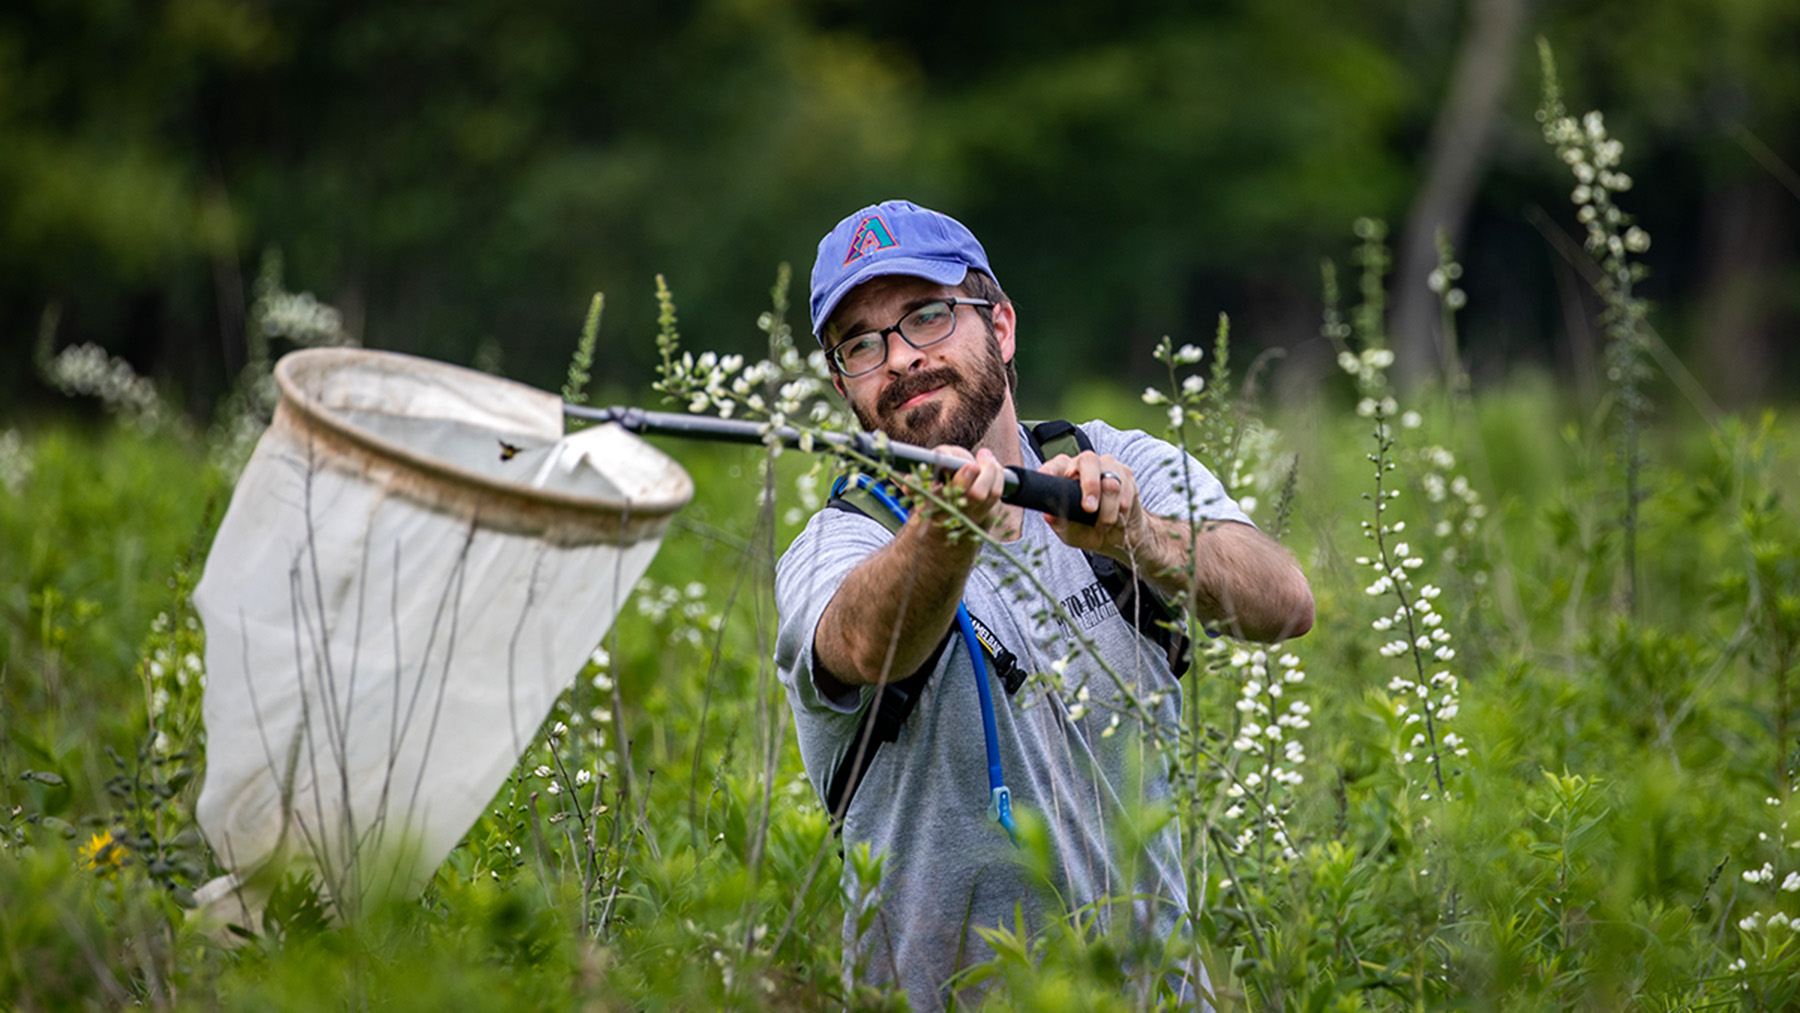 Tommy McElrath collects bees in a net. Photo by Fred Zwicky